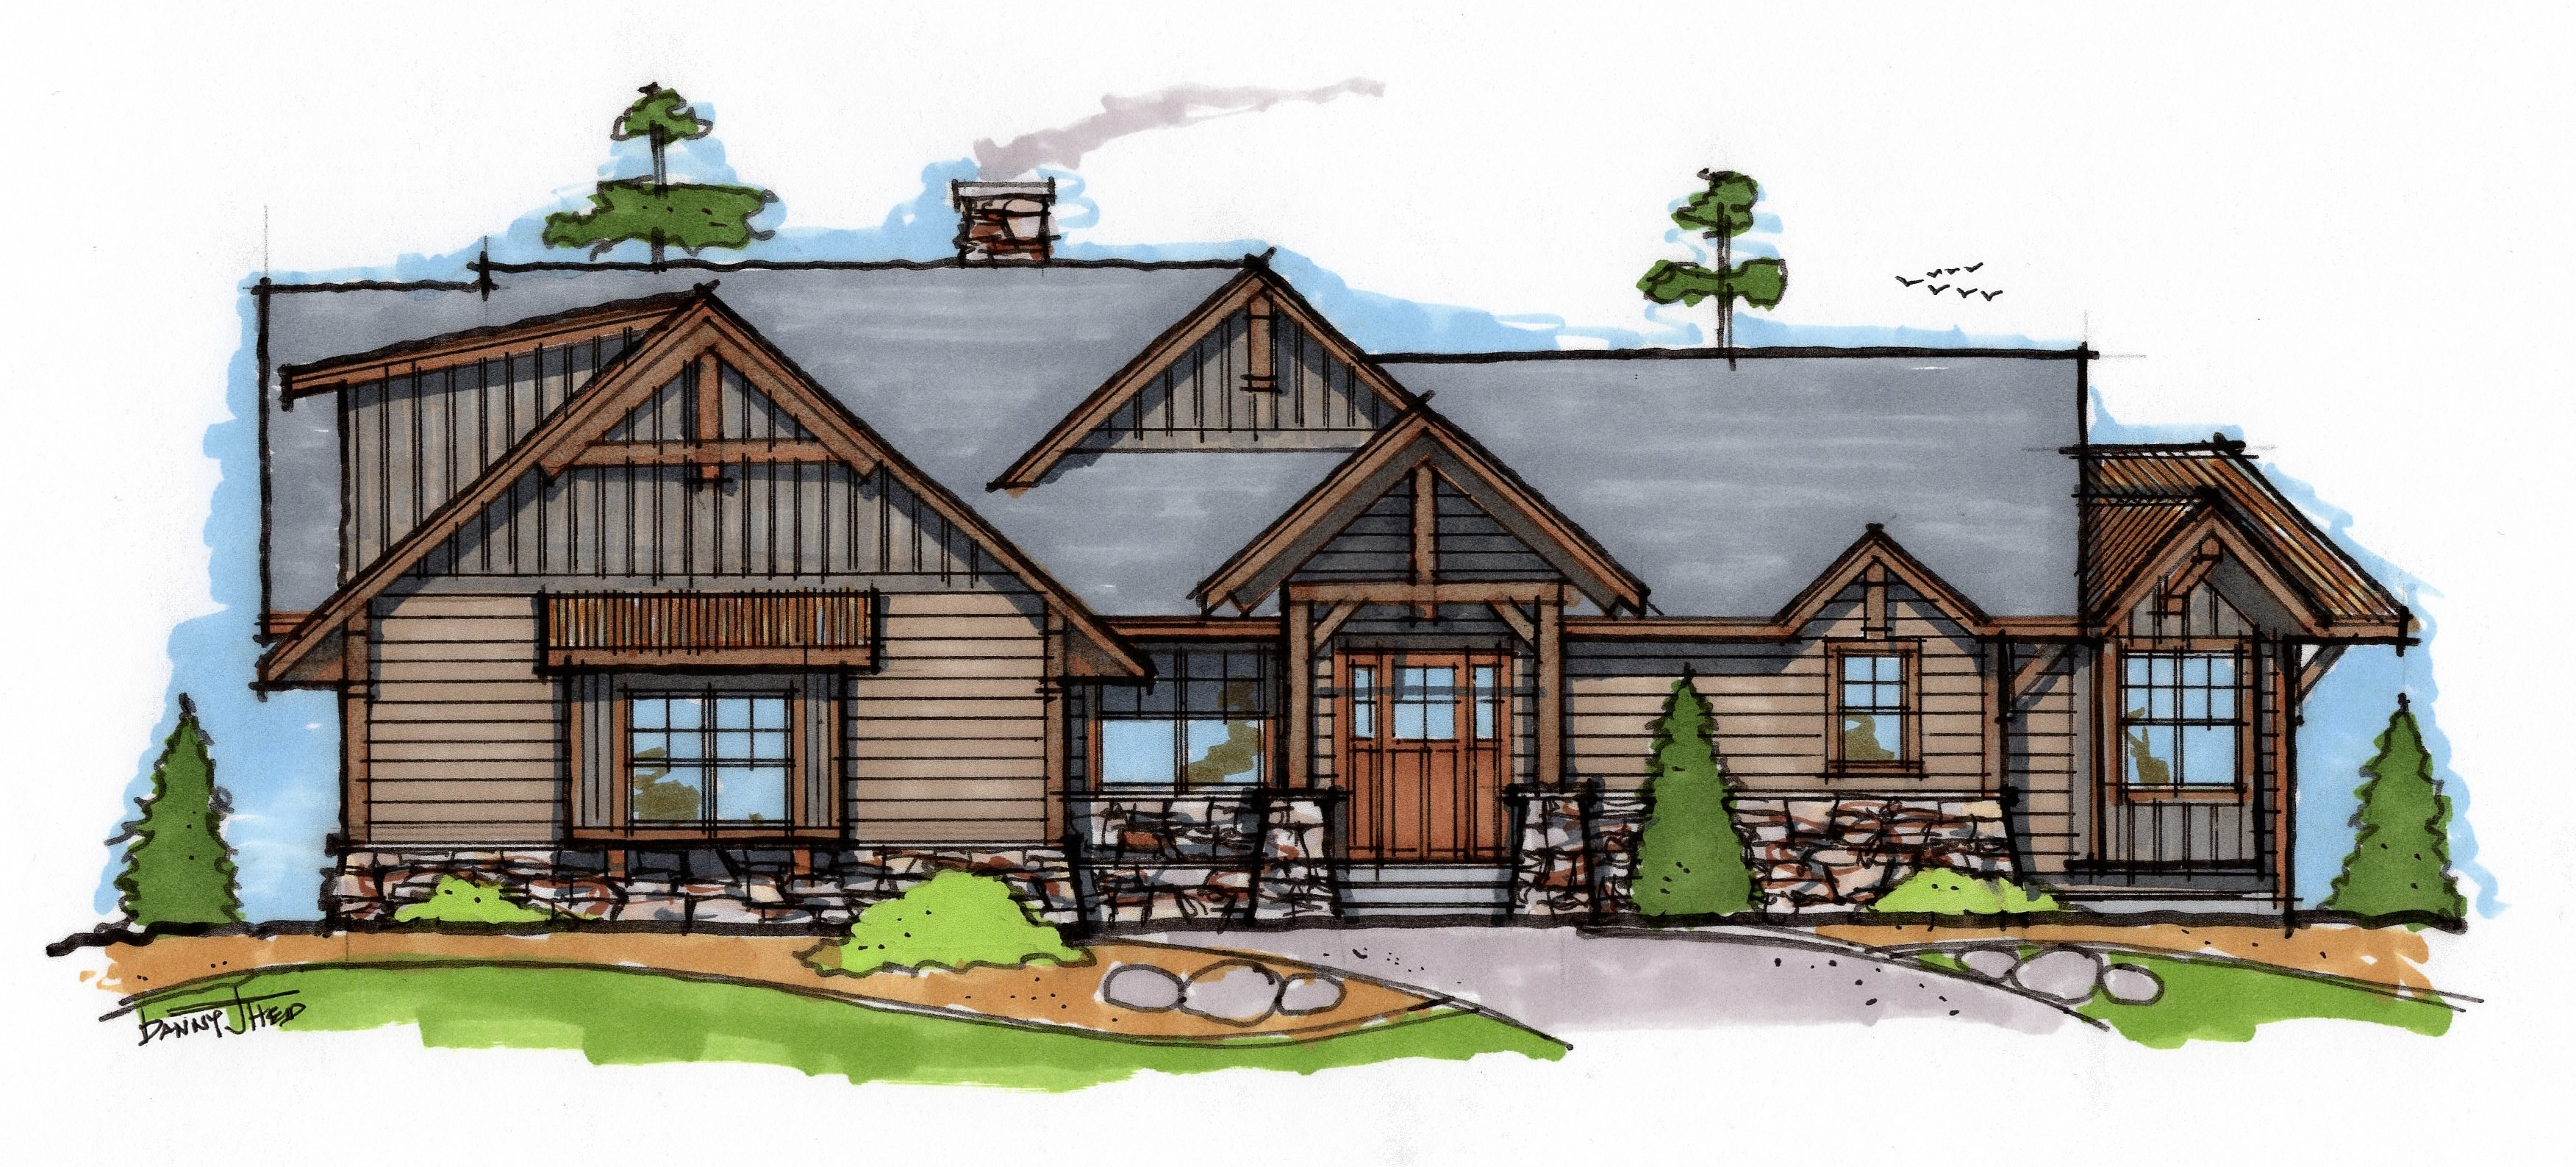 Minnesota custom cabin lake home design lake home for Lake home plans and designs